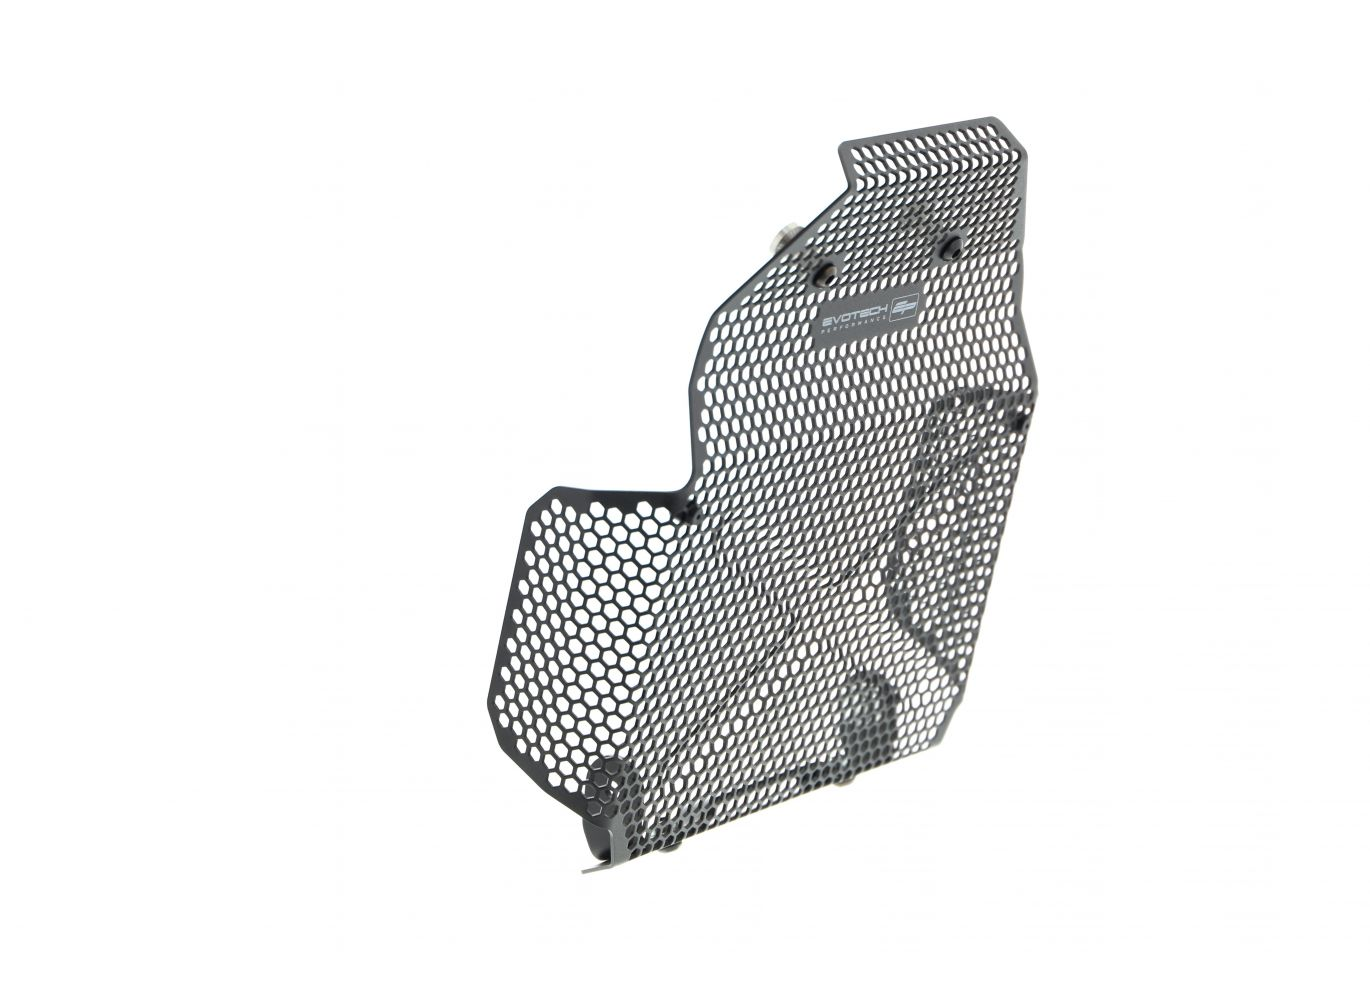 Evotech Performance EP Radiator Guard compatible with Scrambler 1100 2018-2019